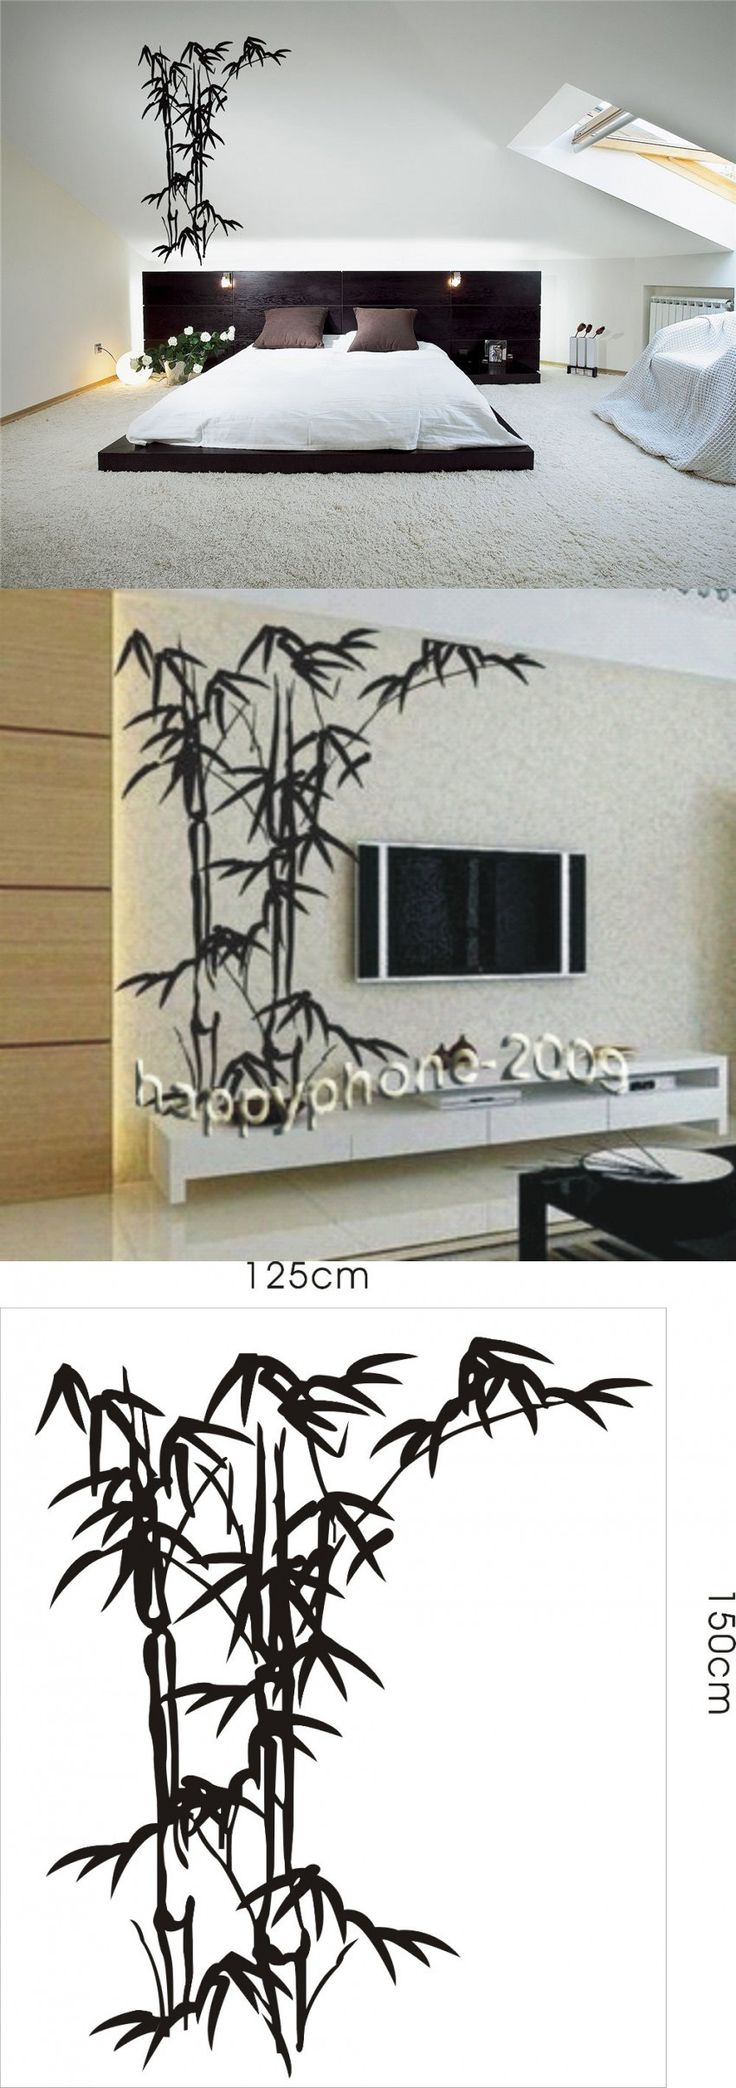 16 best muu sisustus images on pinterest wall stickers bedroom first fashion space bamboo mural home decor decals decorative removable craft wall stickers fashion125 150cm